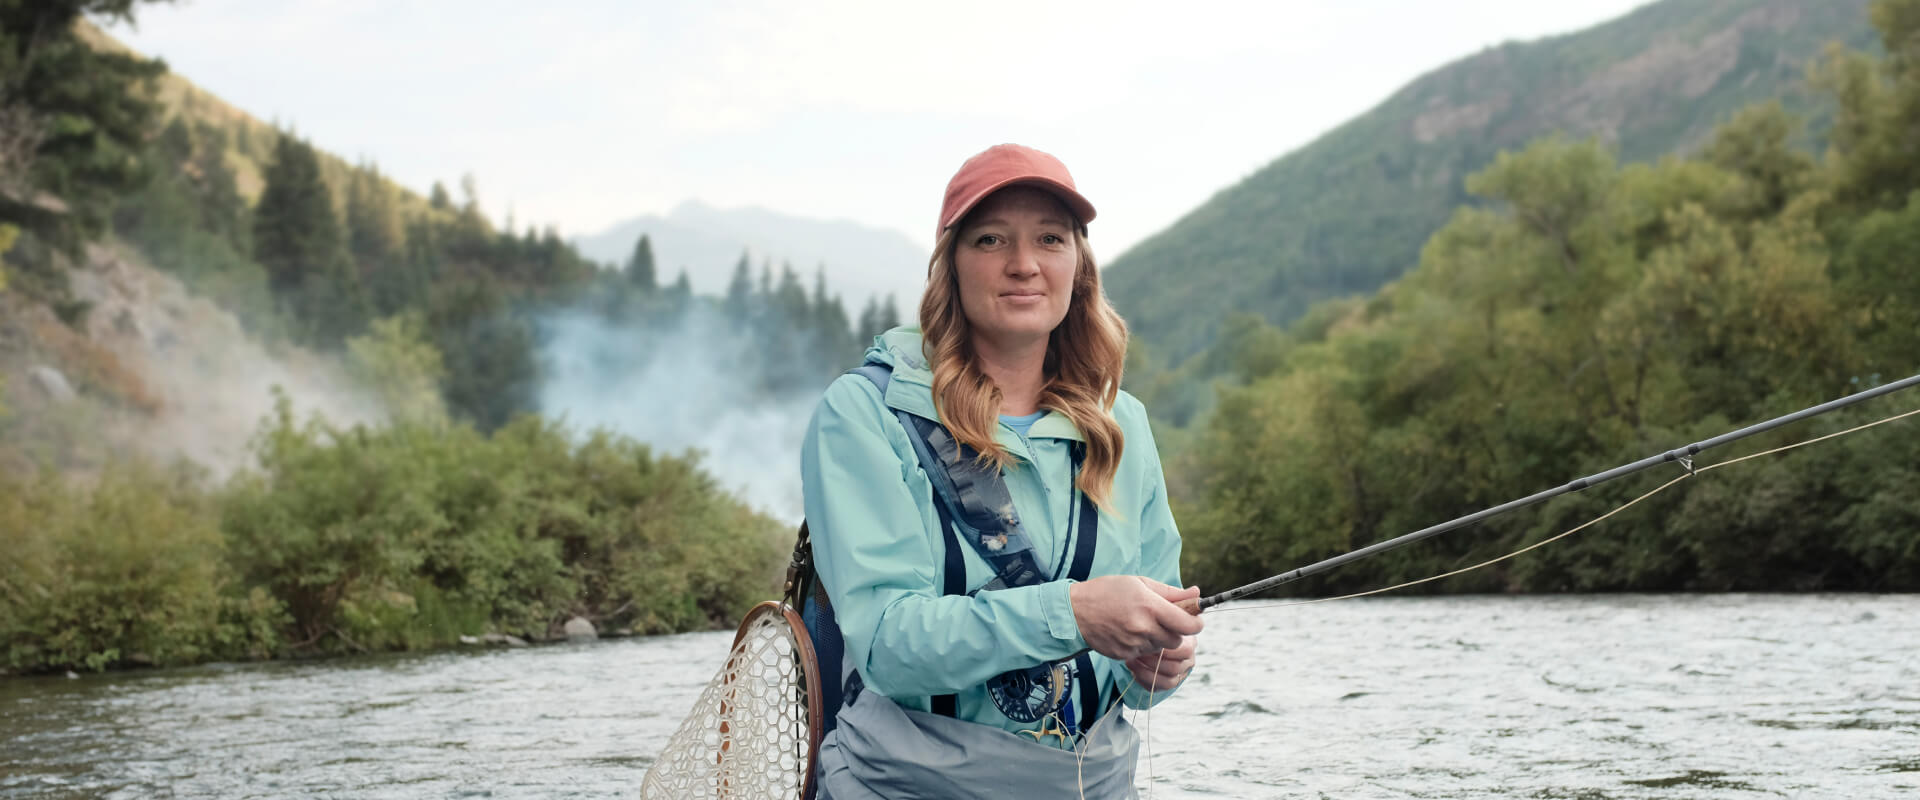 Woman in a hat and athletic clothes fly fishing in a river